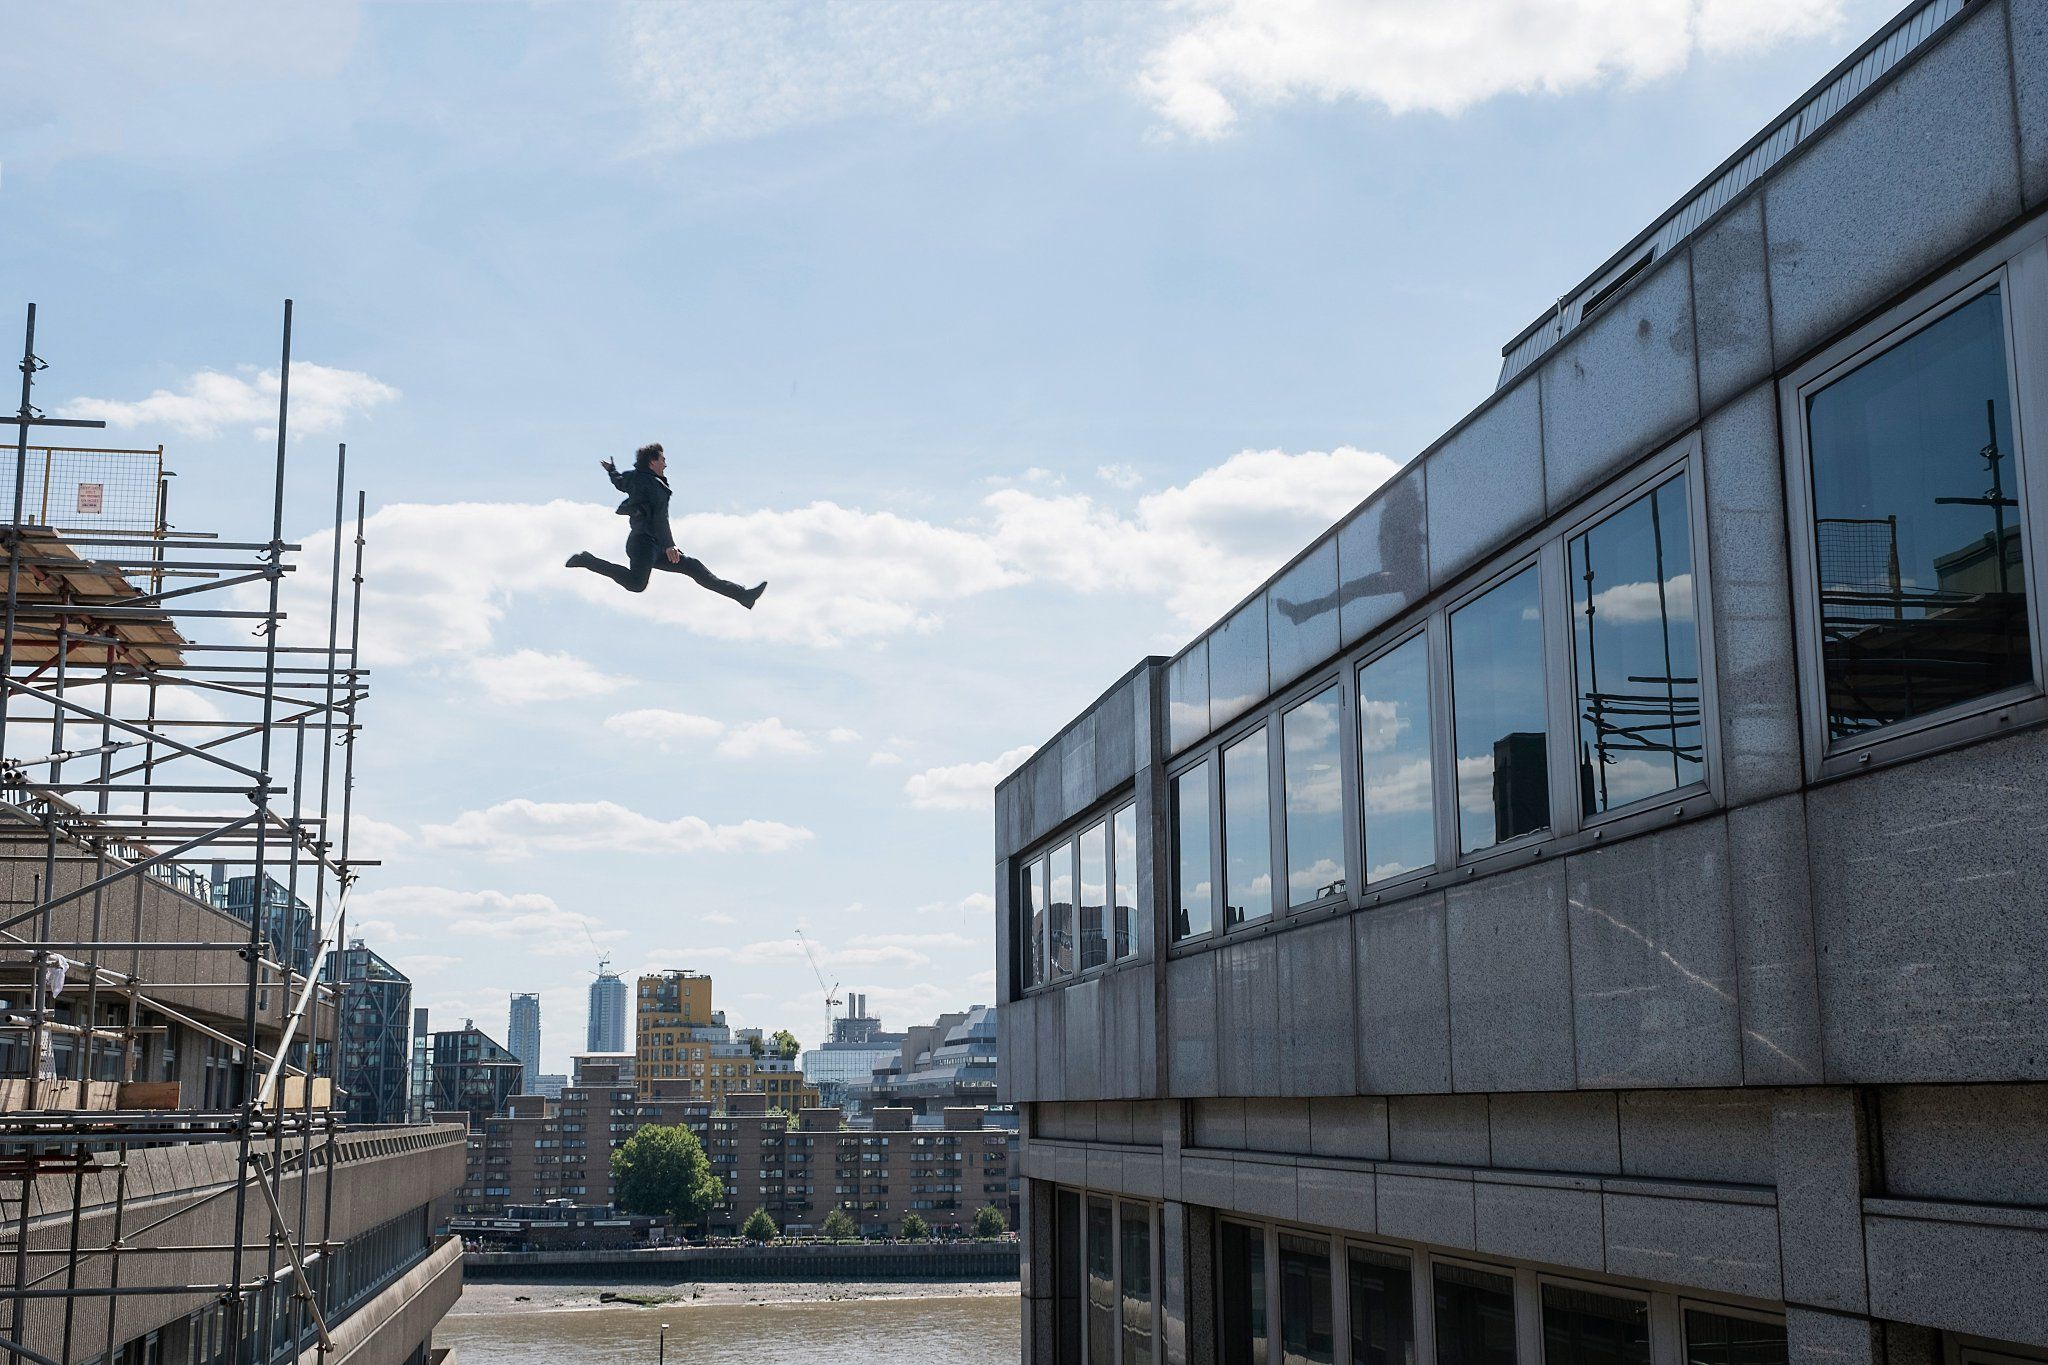 Mission Impossible  Building Jump